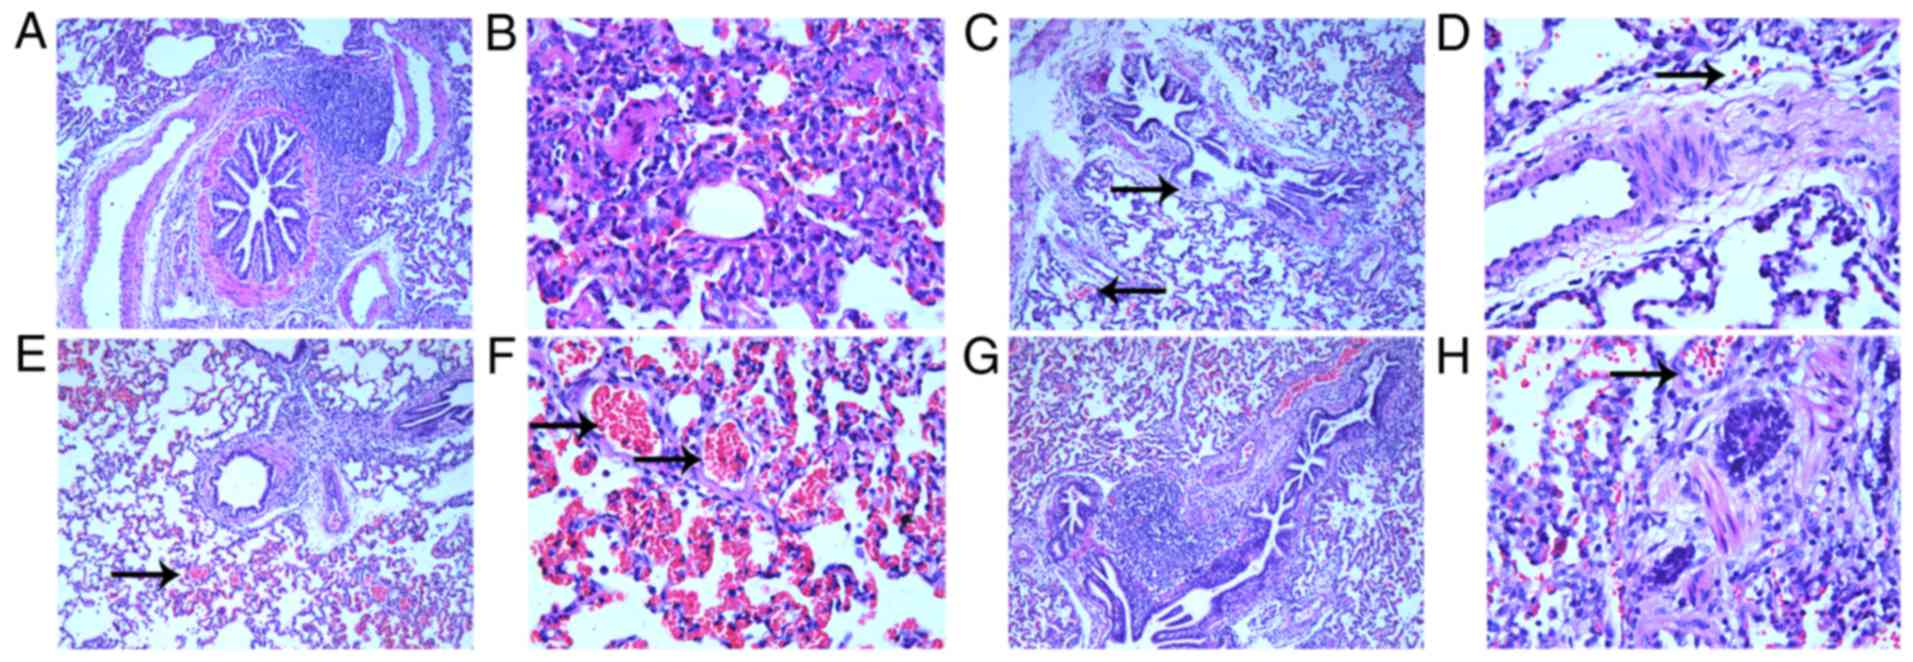 Association between ACE2/ACE balance and pneumocyte apoptosis in a